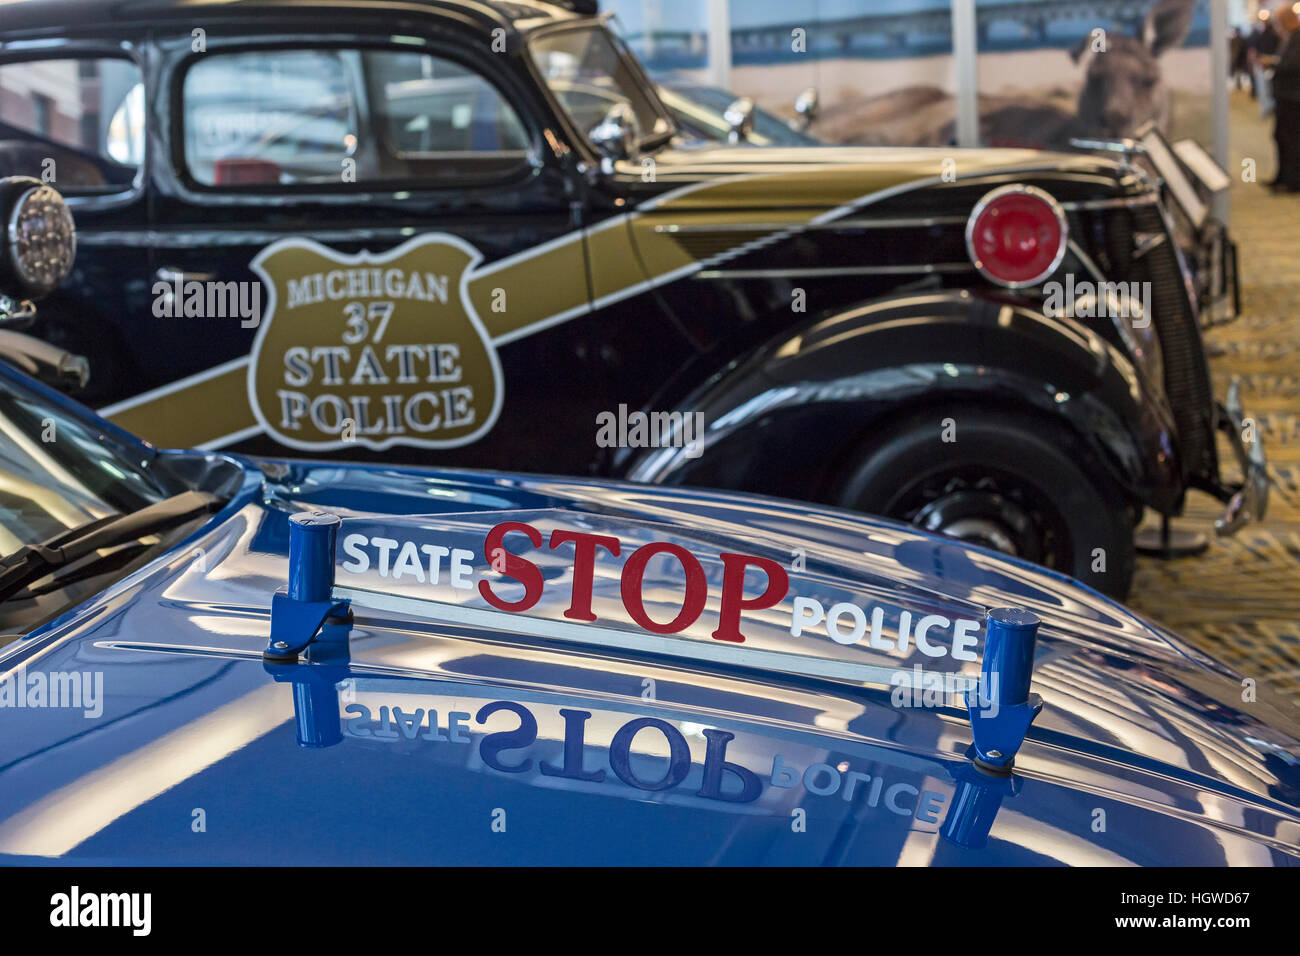 Detroit, Michigan - Michigan State Police cars on display at the ...